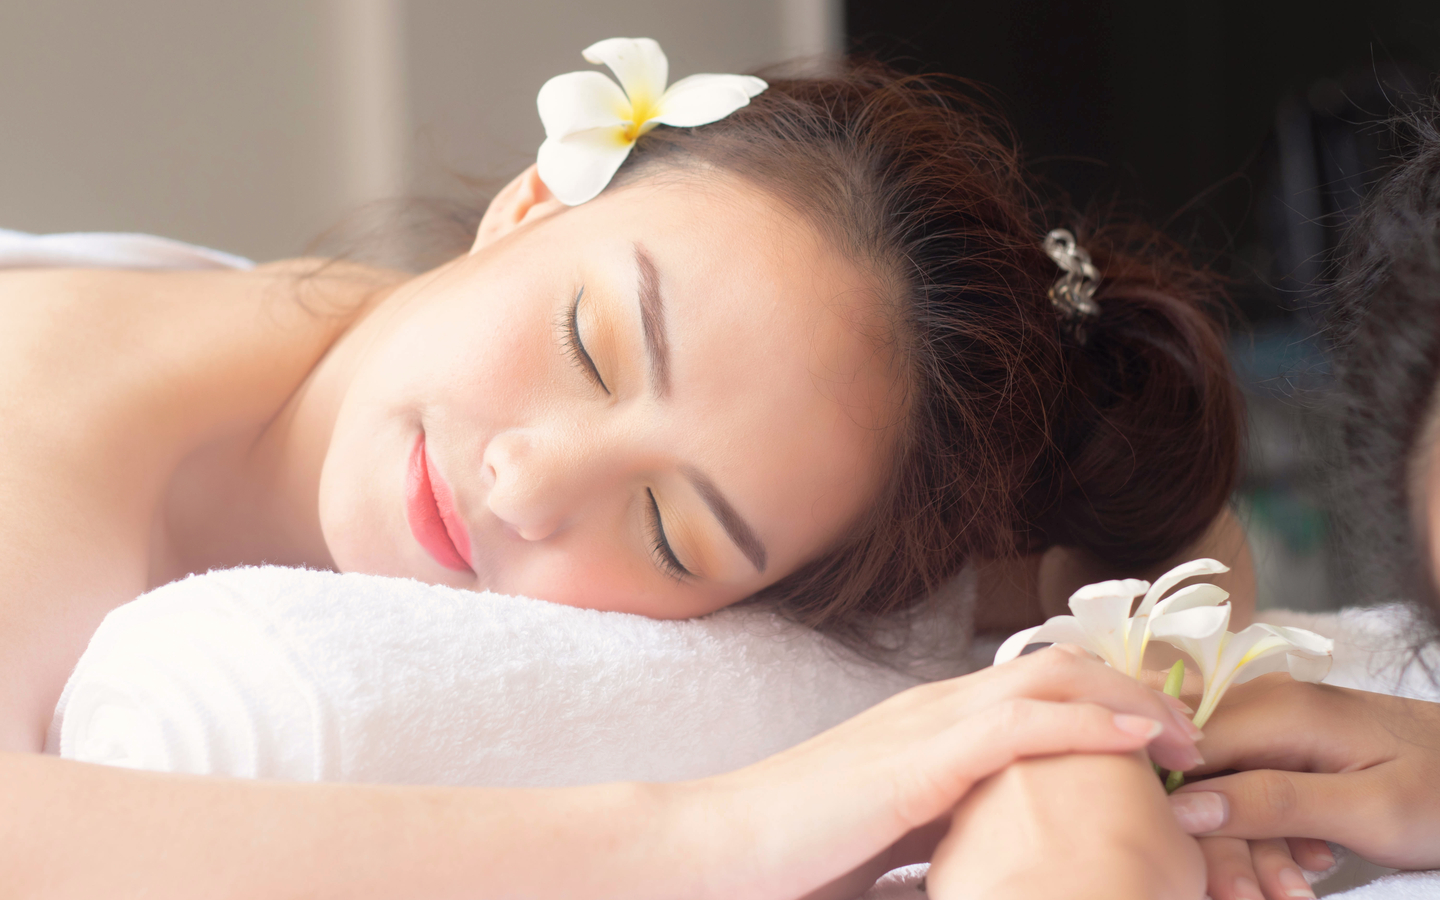 You can avail from a wide range of body massages at Alessia Spa & Salon